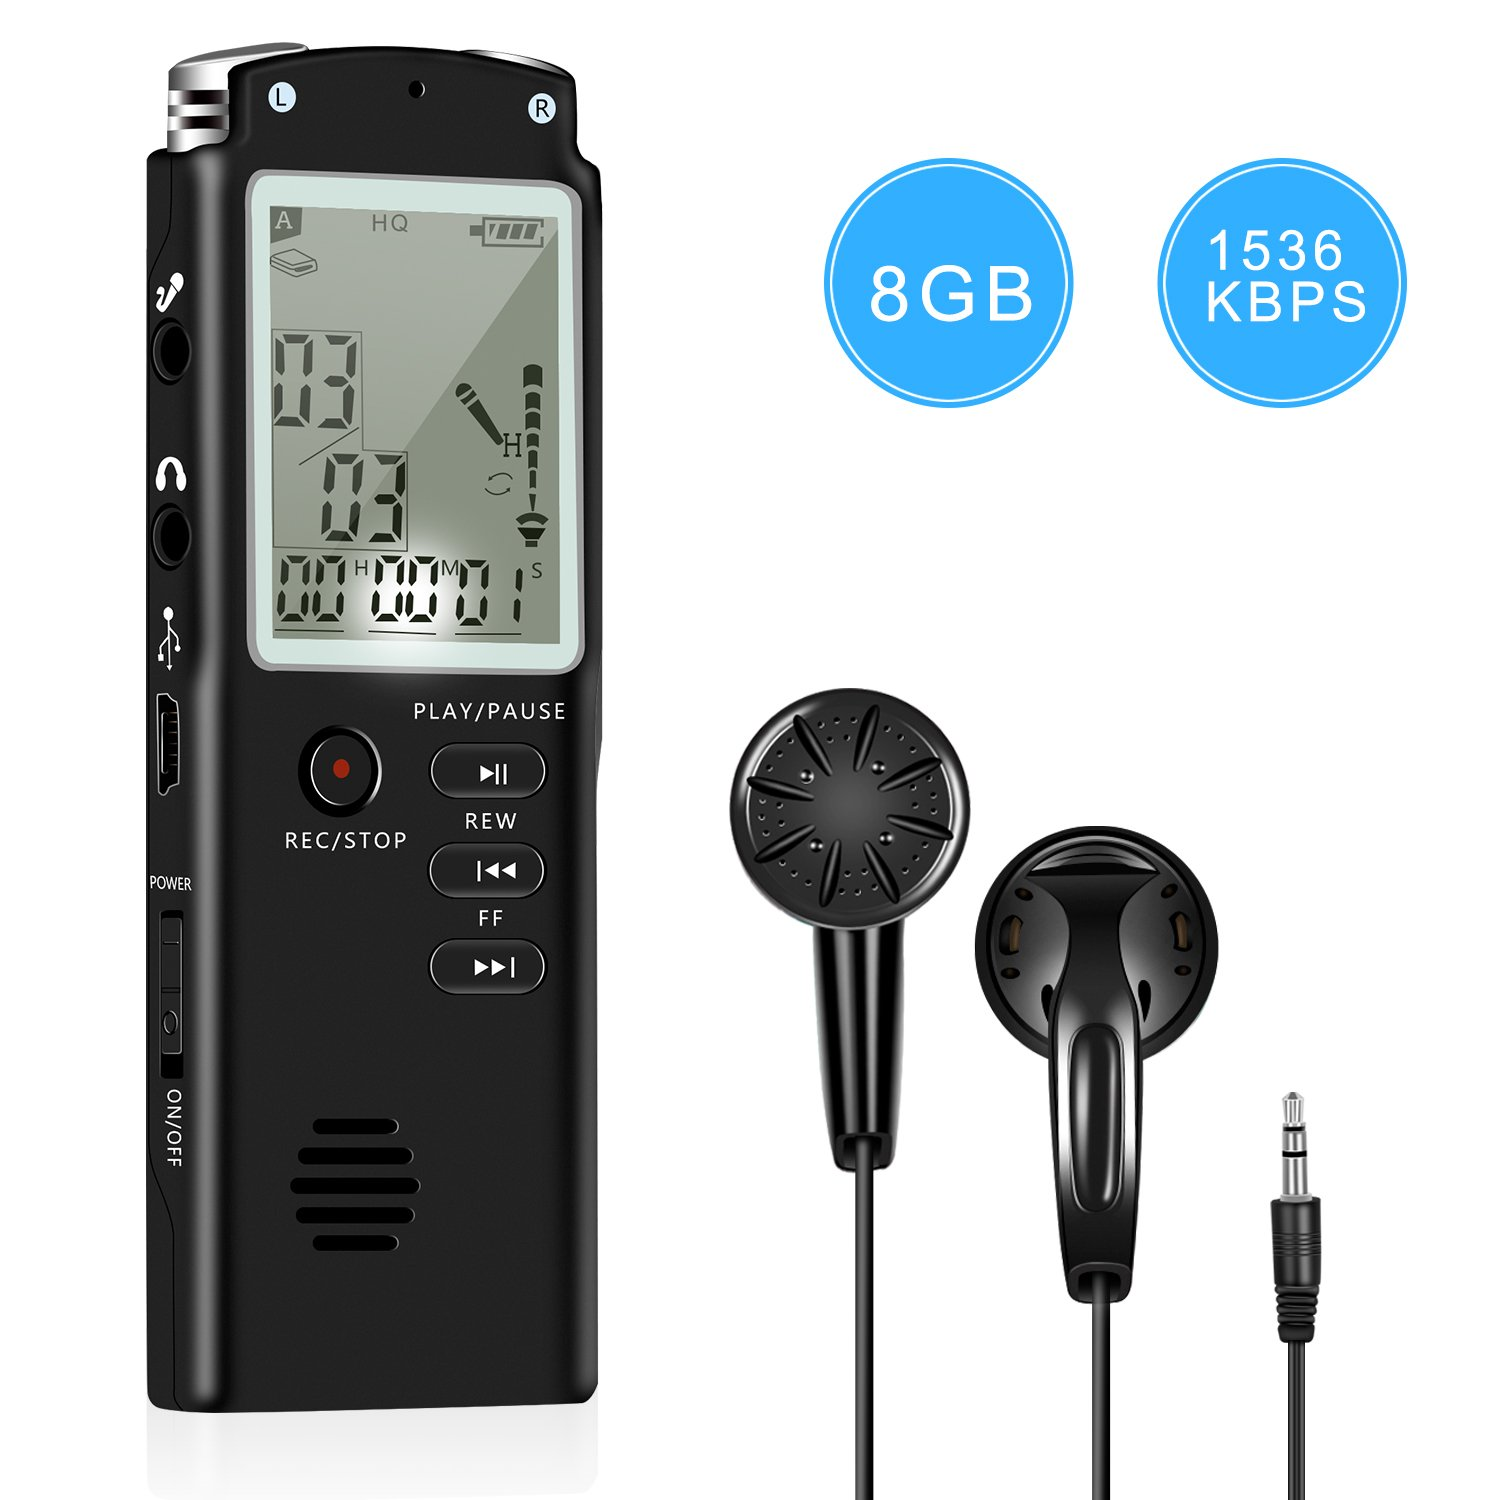 Voice Recorder - Dual Microphone 8gb Digital Voice Activated Recorder with MP3 Player, Rechargeable HD Audio Recorder, A-B Repeat and 1 Touch Recording Best for Lectures/Meeting / Interview (1536kbp